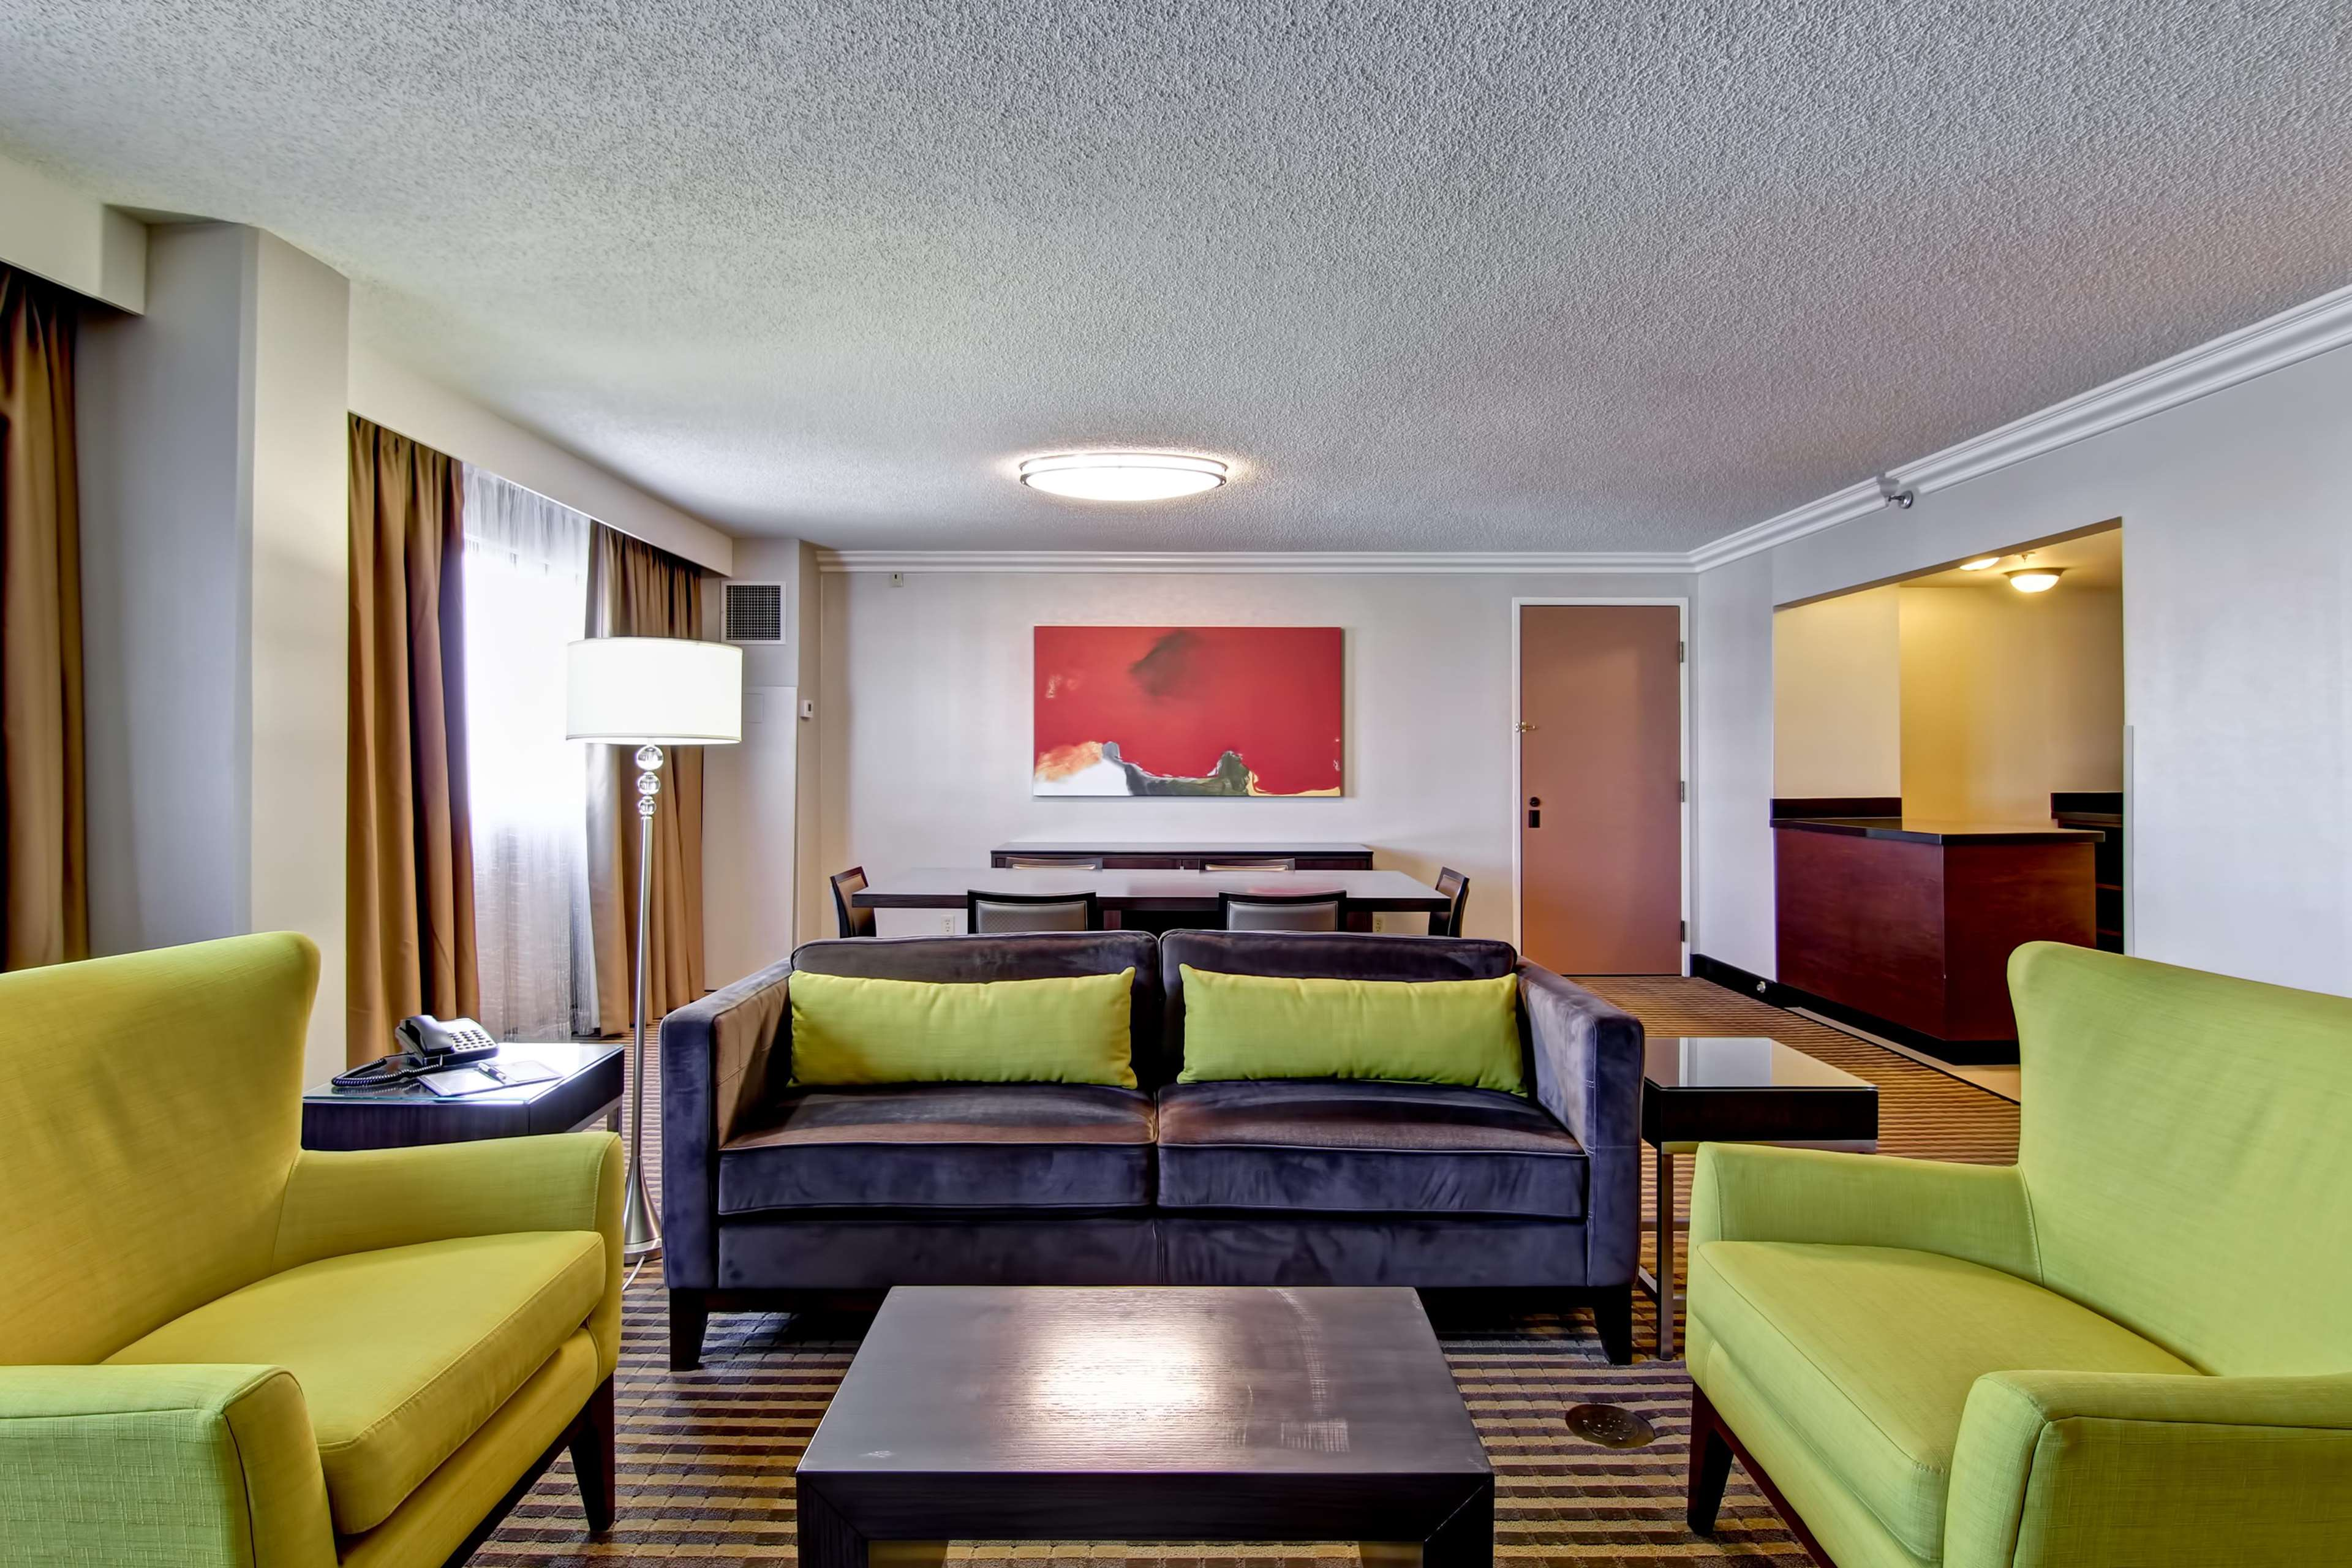 DoubleTree by Hilton Hotel Pleasanton at the Club image 30